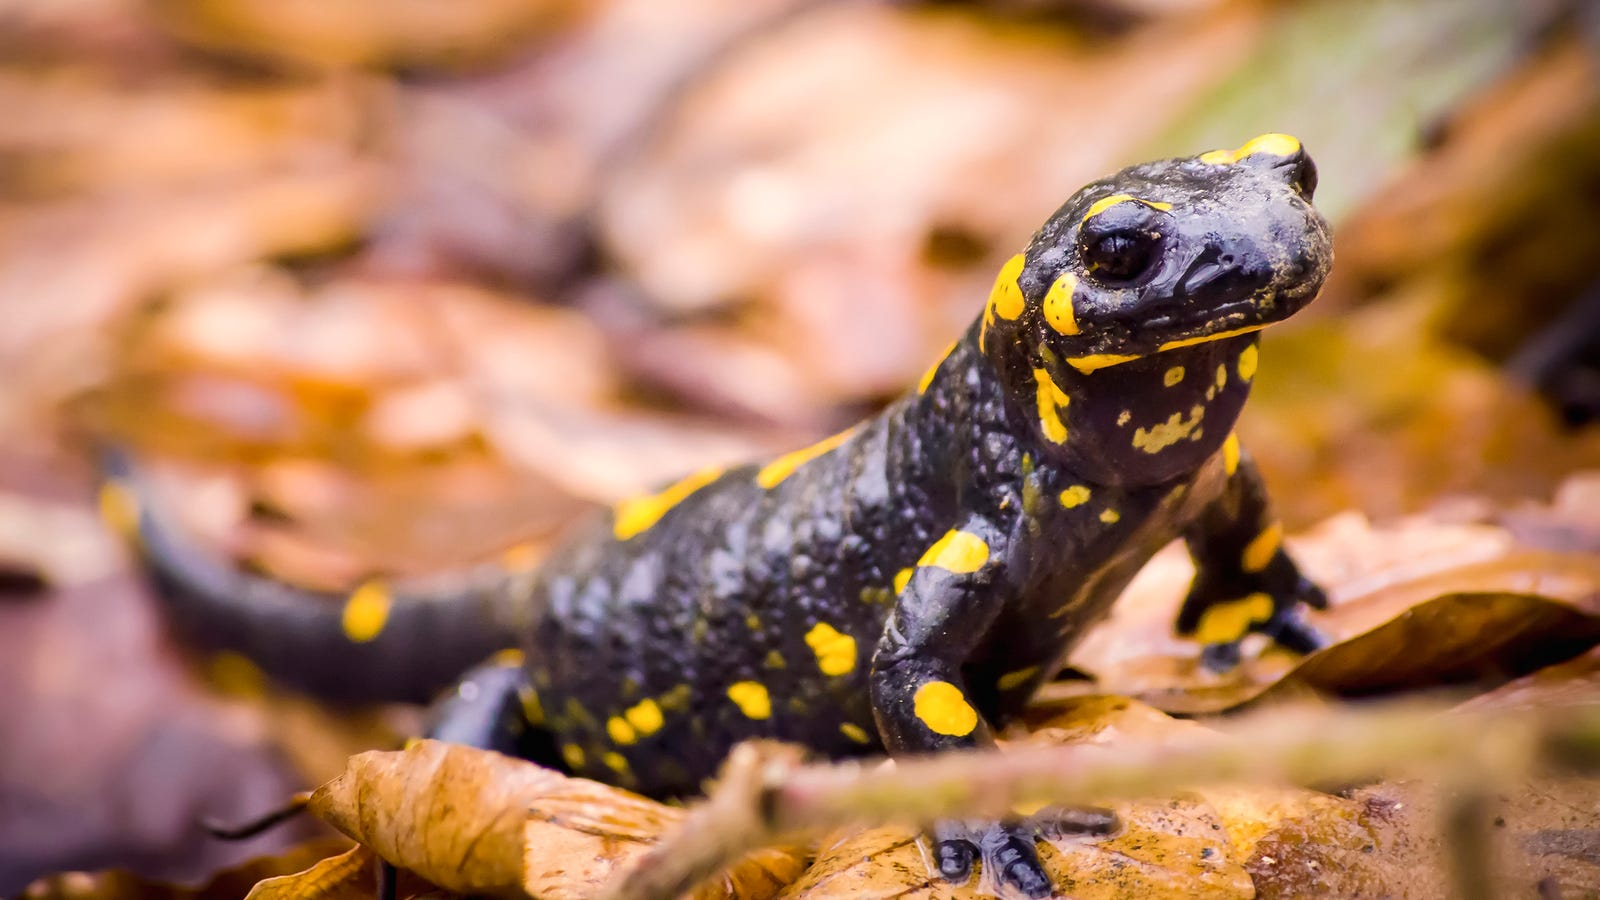 Salamanders Bravely Offer To Go Extinct In Place Of Better Animal